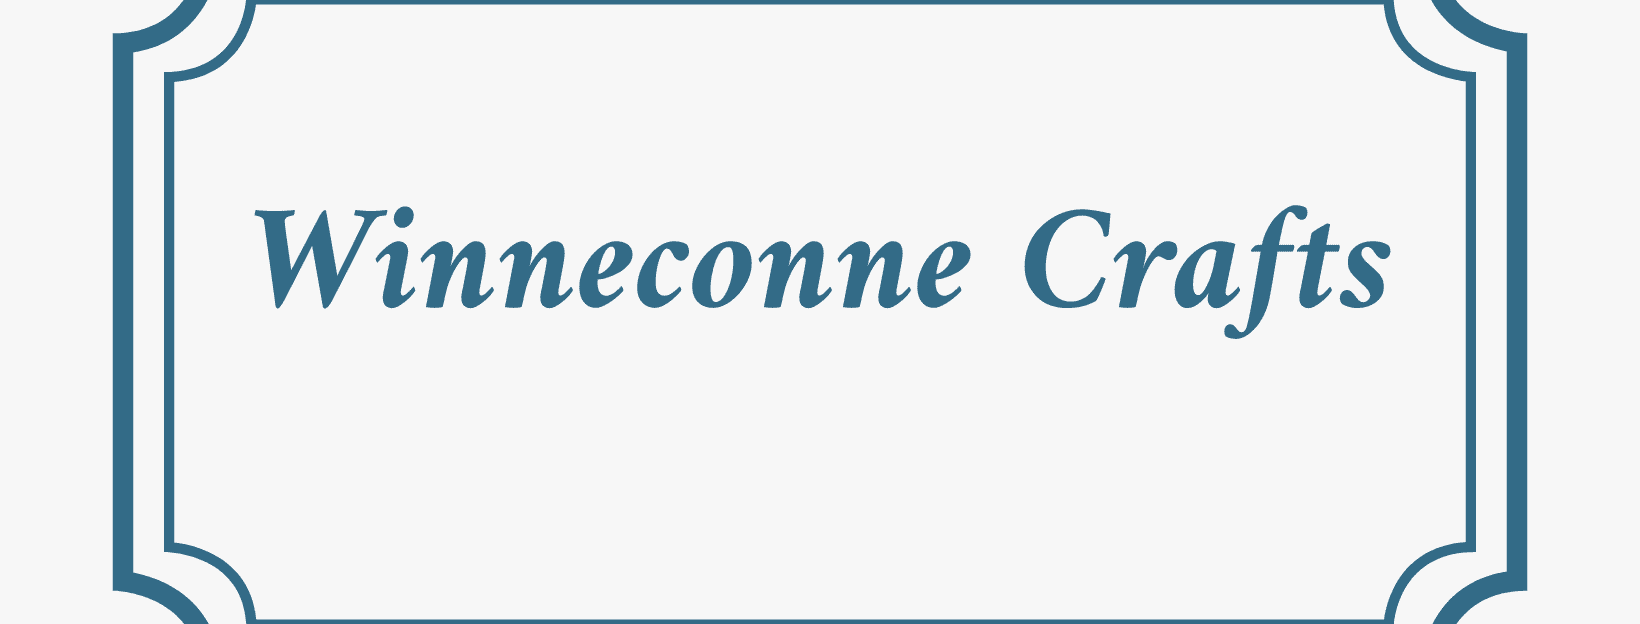 Winneconne Crafts